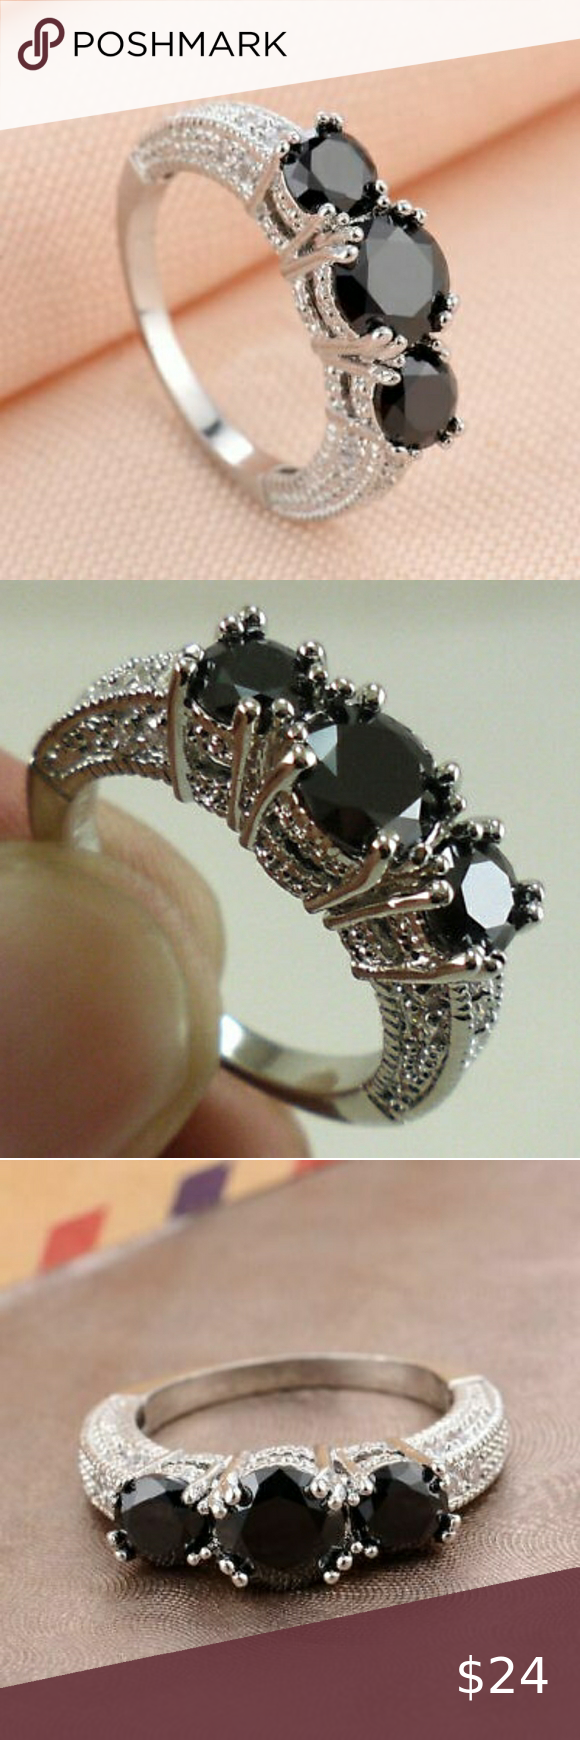 10k White Gold Filled Black Sapphire Ring In 2020 Black Sapphire Ring Womens Jewelry Rings Black Sapphire